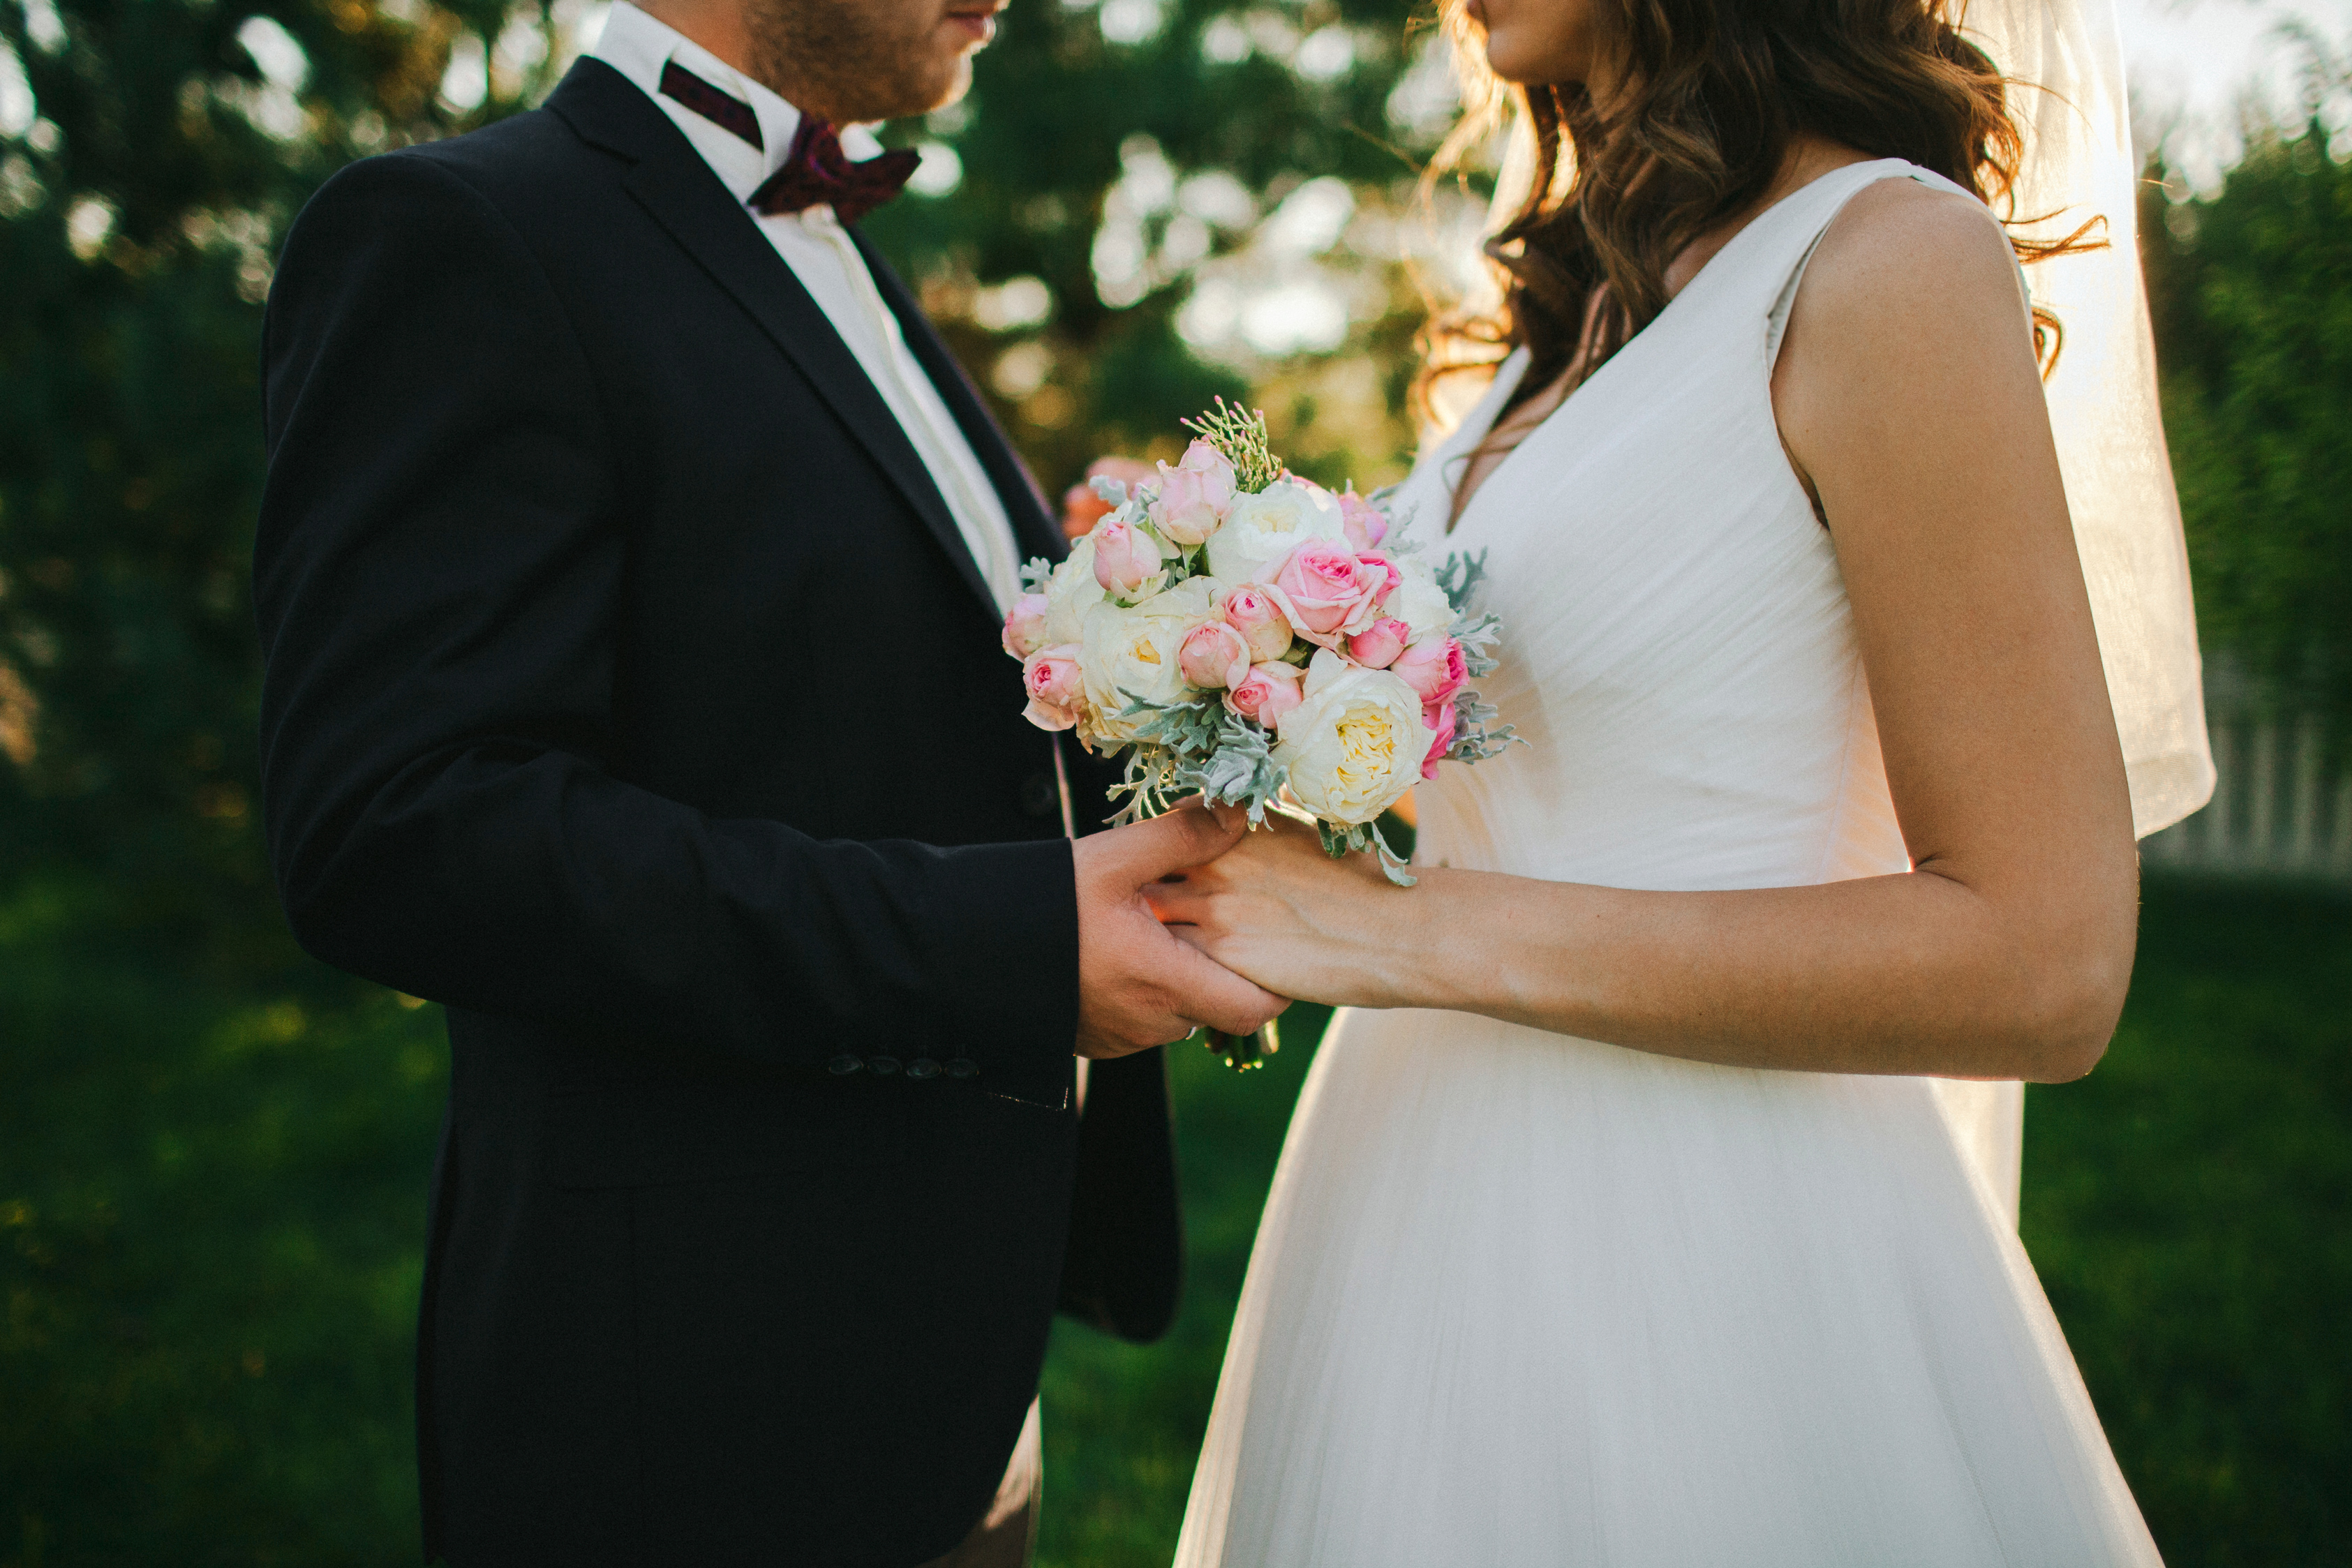 548f7ab707e841bbb7b357a12da4bd19 - 31 Smart and Easy Ways To Save Money On Your Wedding Without Cutting the Guest List